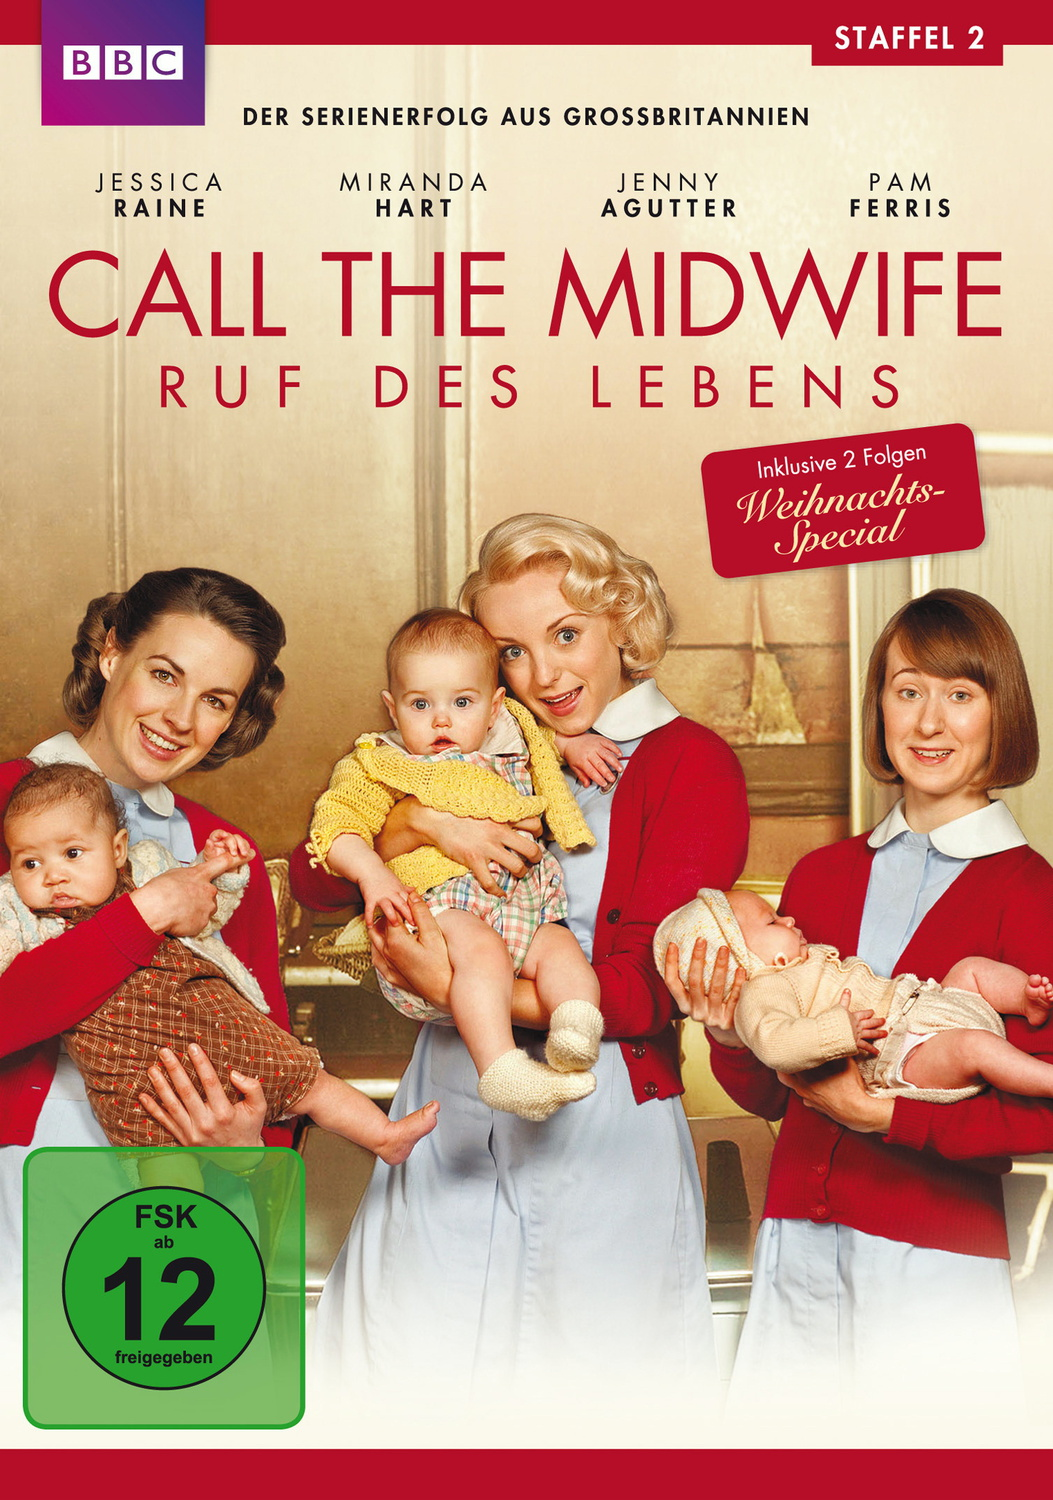 Call the Midwife - Ruf des Lebens, Staffel 2 [3 DVDs]